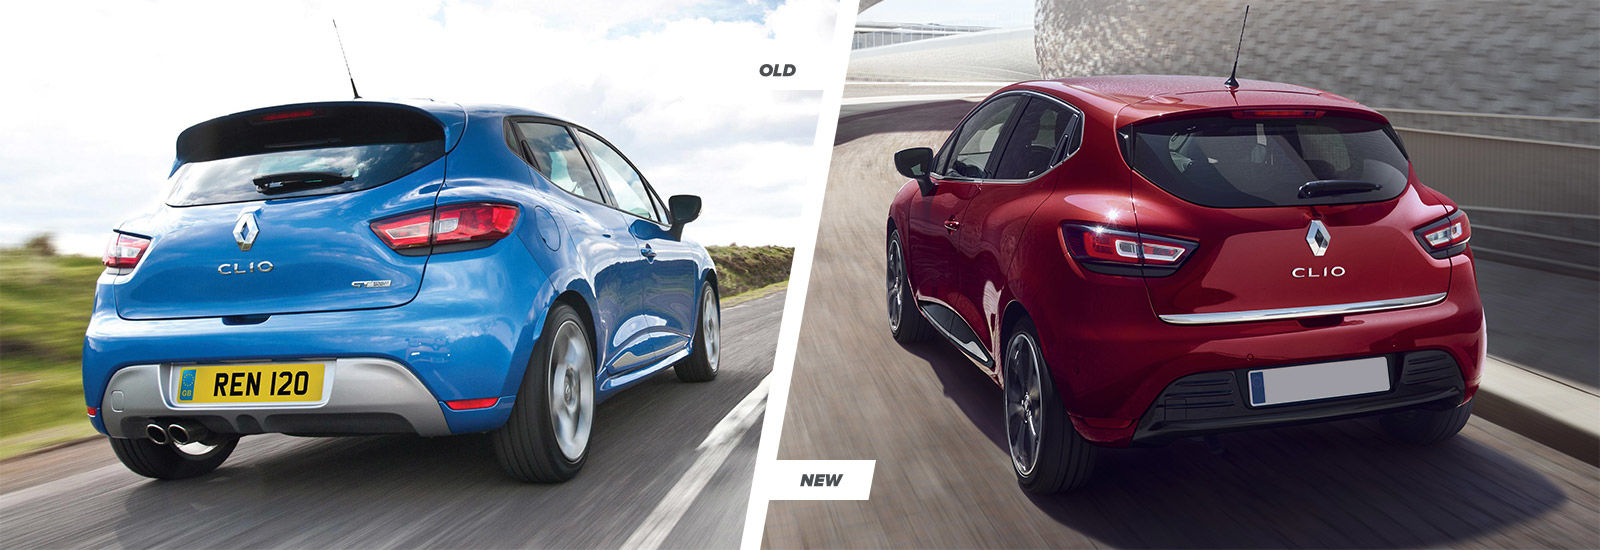 Renault Clio facelift: old vs new compared | carwow